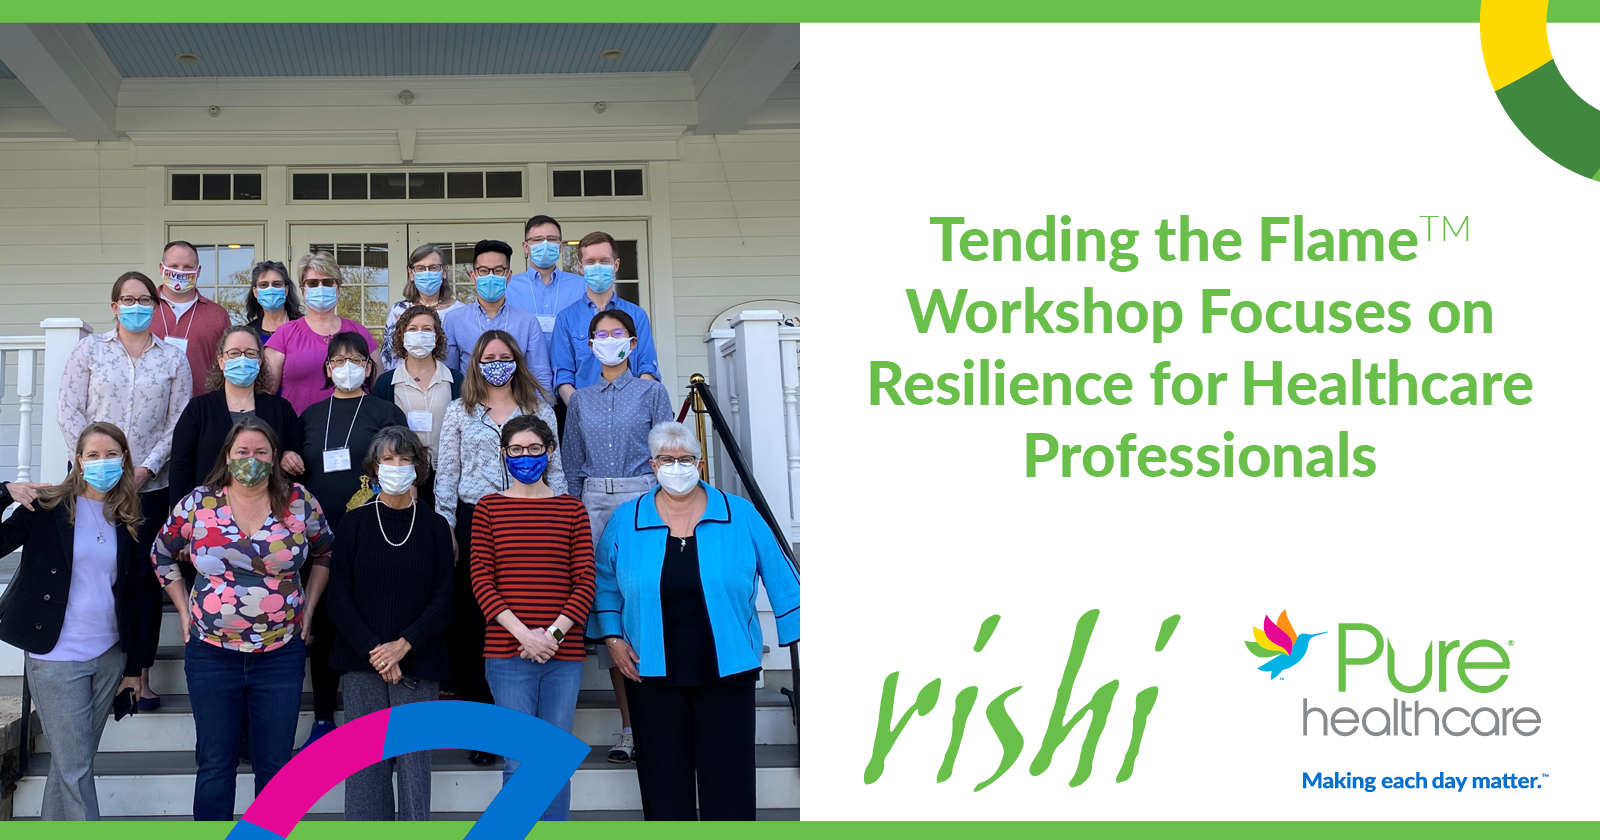 Tending The Flame Workshop Focuses On Resilience For Healthcare Professionals